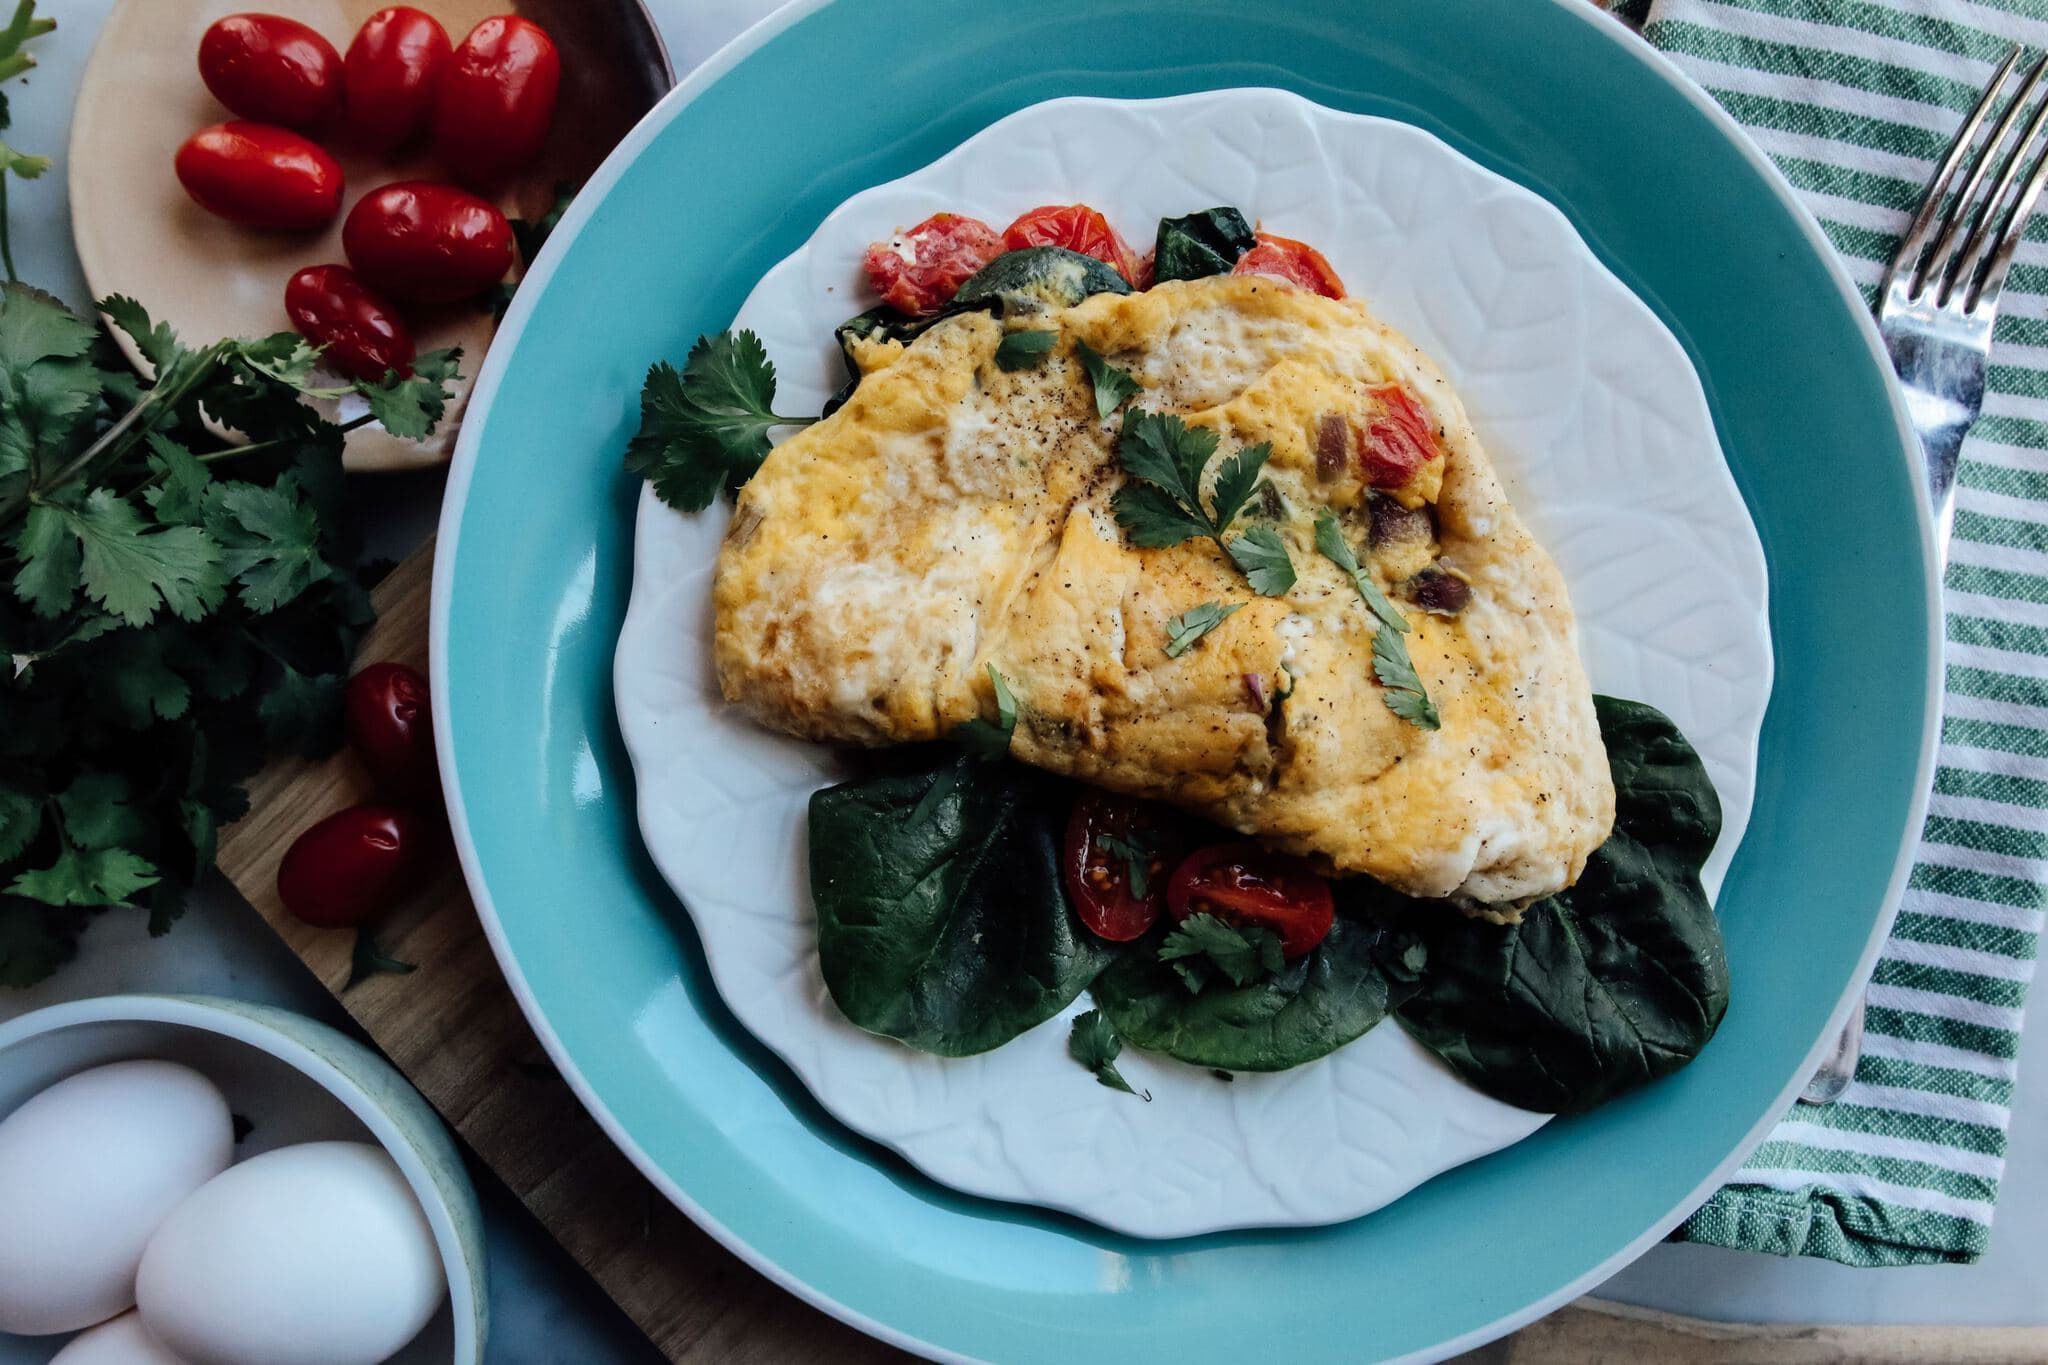 omelet with spinach and tomatoes